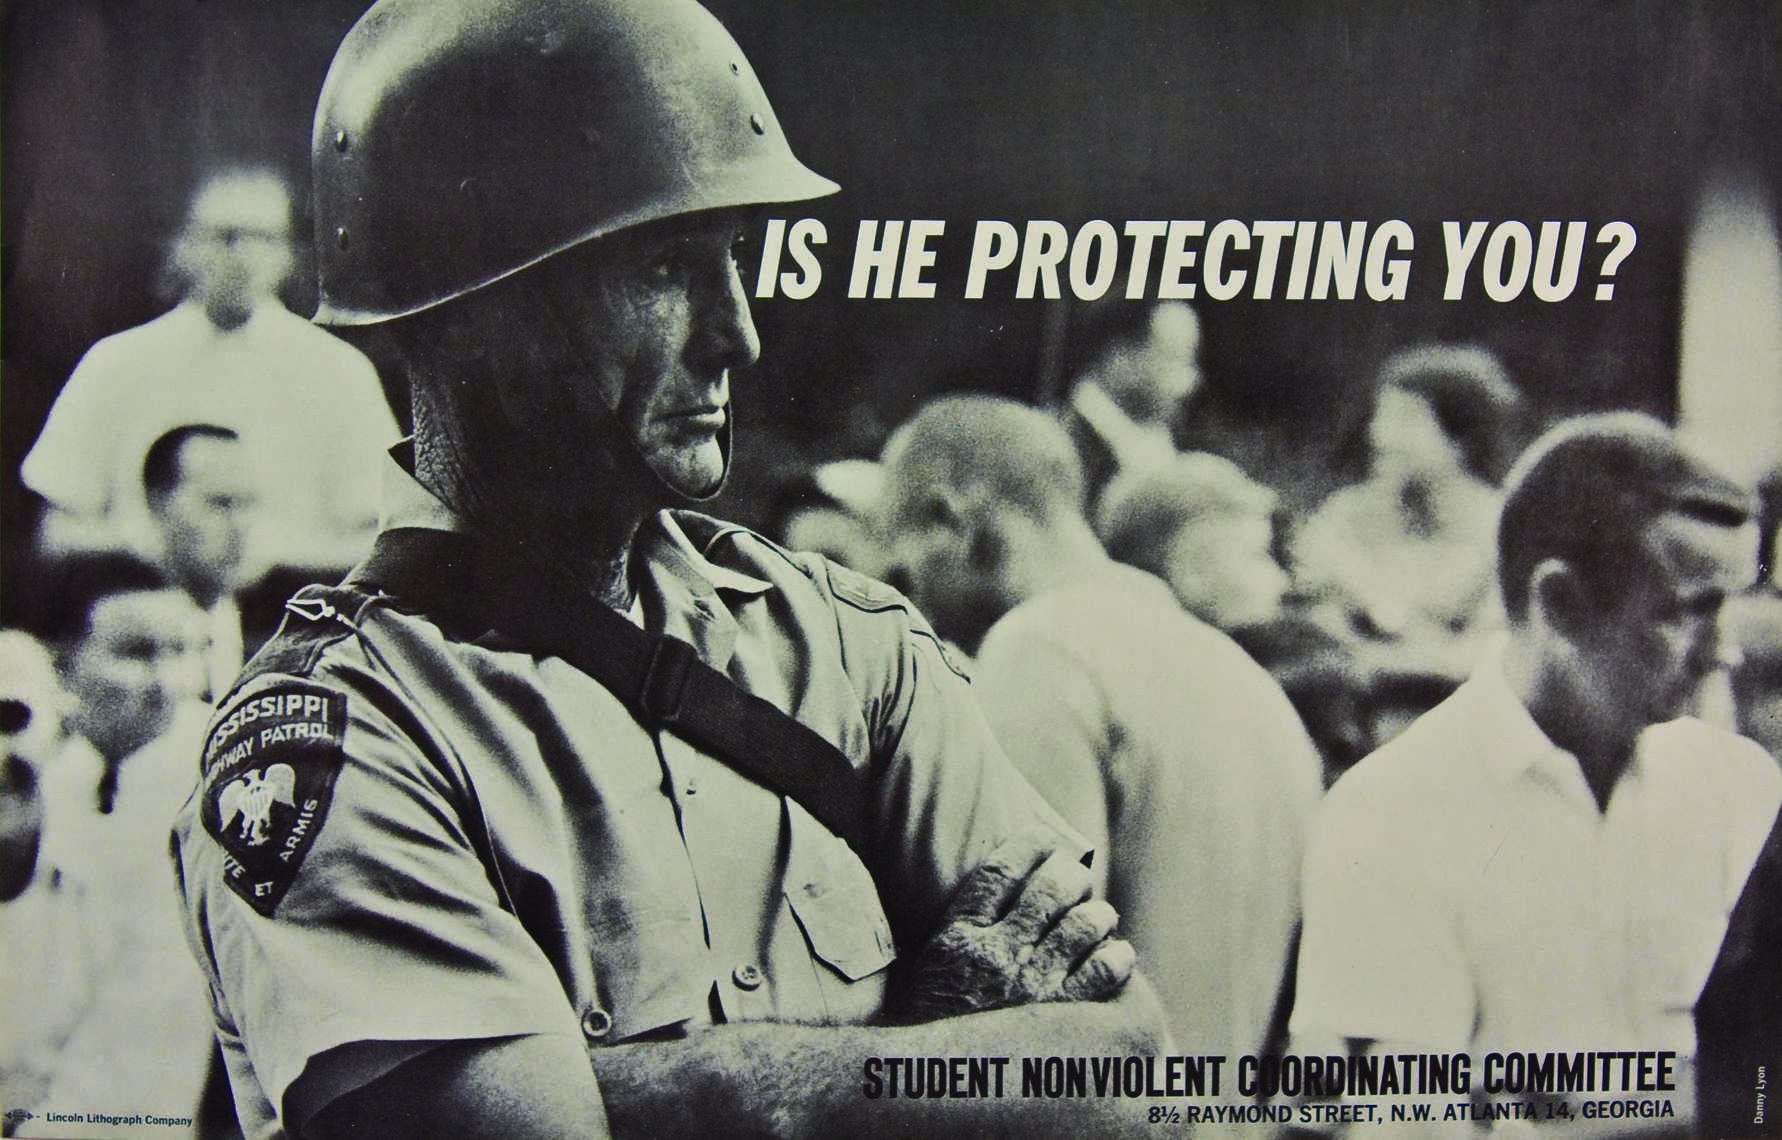 Danny Lyon, Is he protecting you?, 1964 (Courtesy: Interferfence Archive)